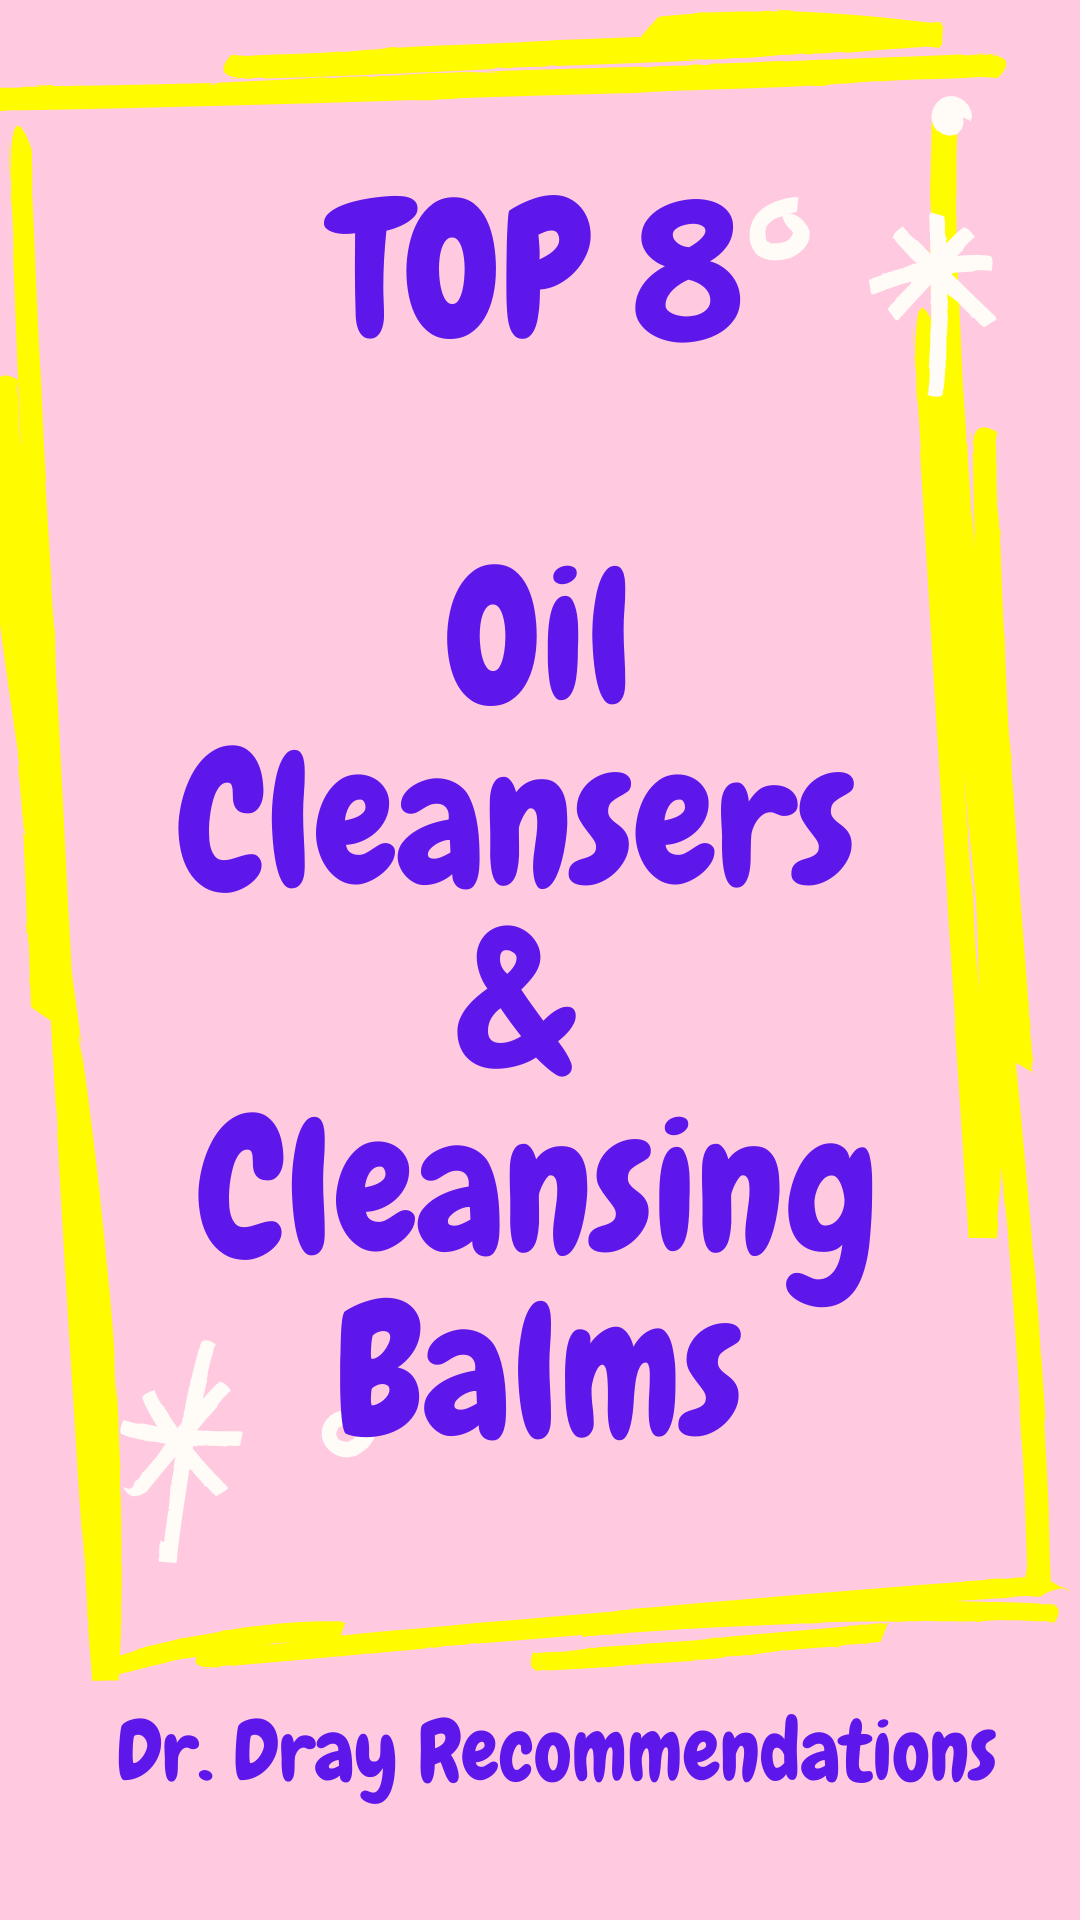 TOP 8 Oil Cleansers & Cleansing Balms - Dr. Dray Recommendations